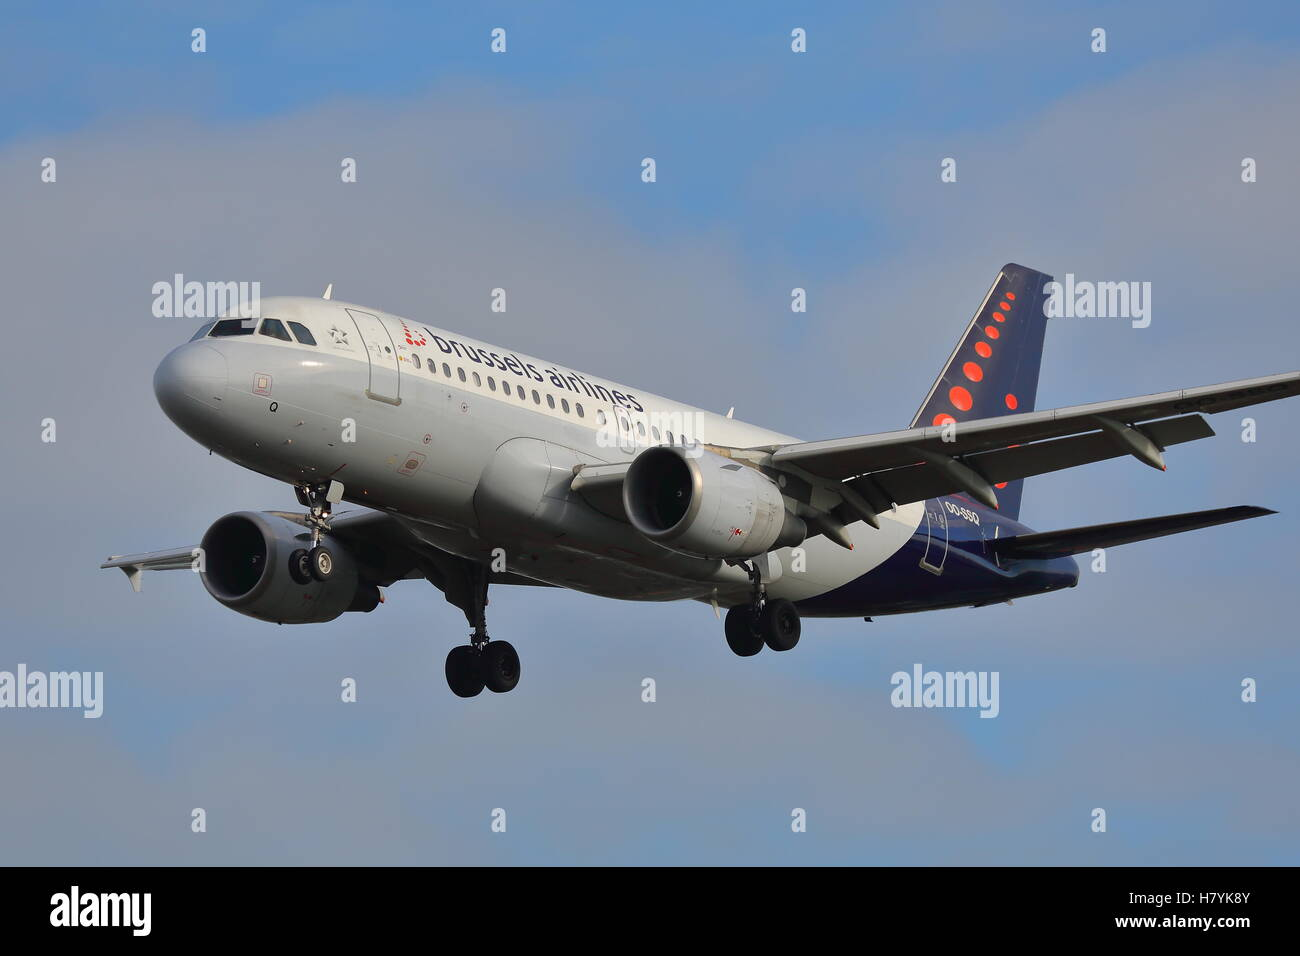 Brussels Airlines Airbus A319-112 OO-SSQ landing at London Heathrow Airport, UK - Stock Image